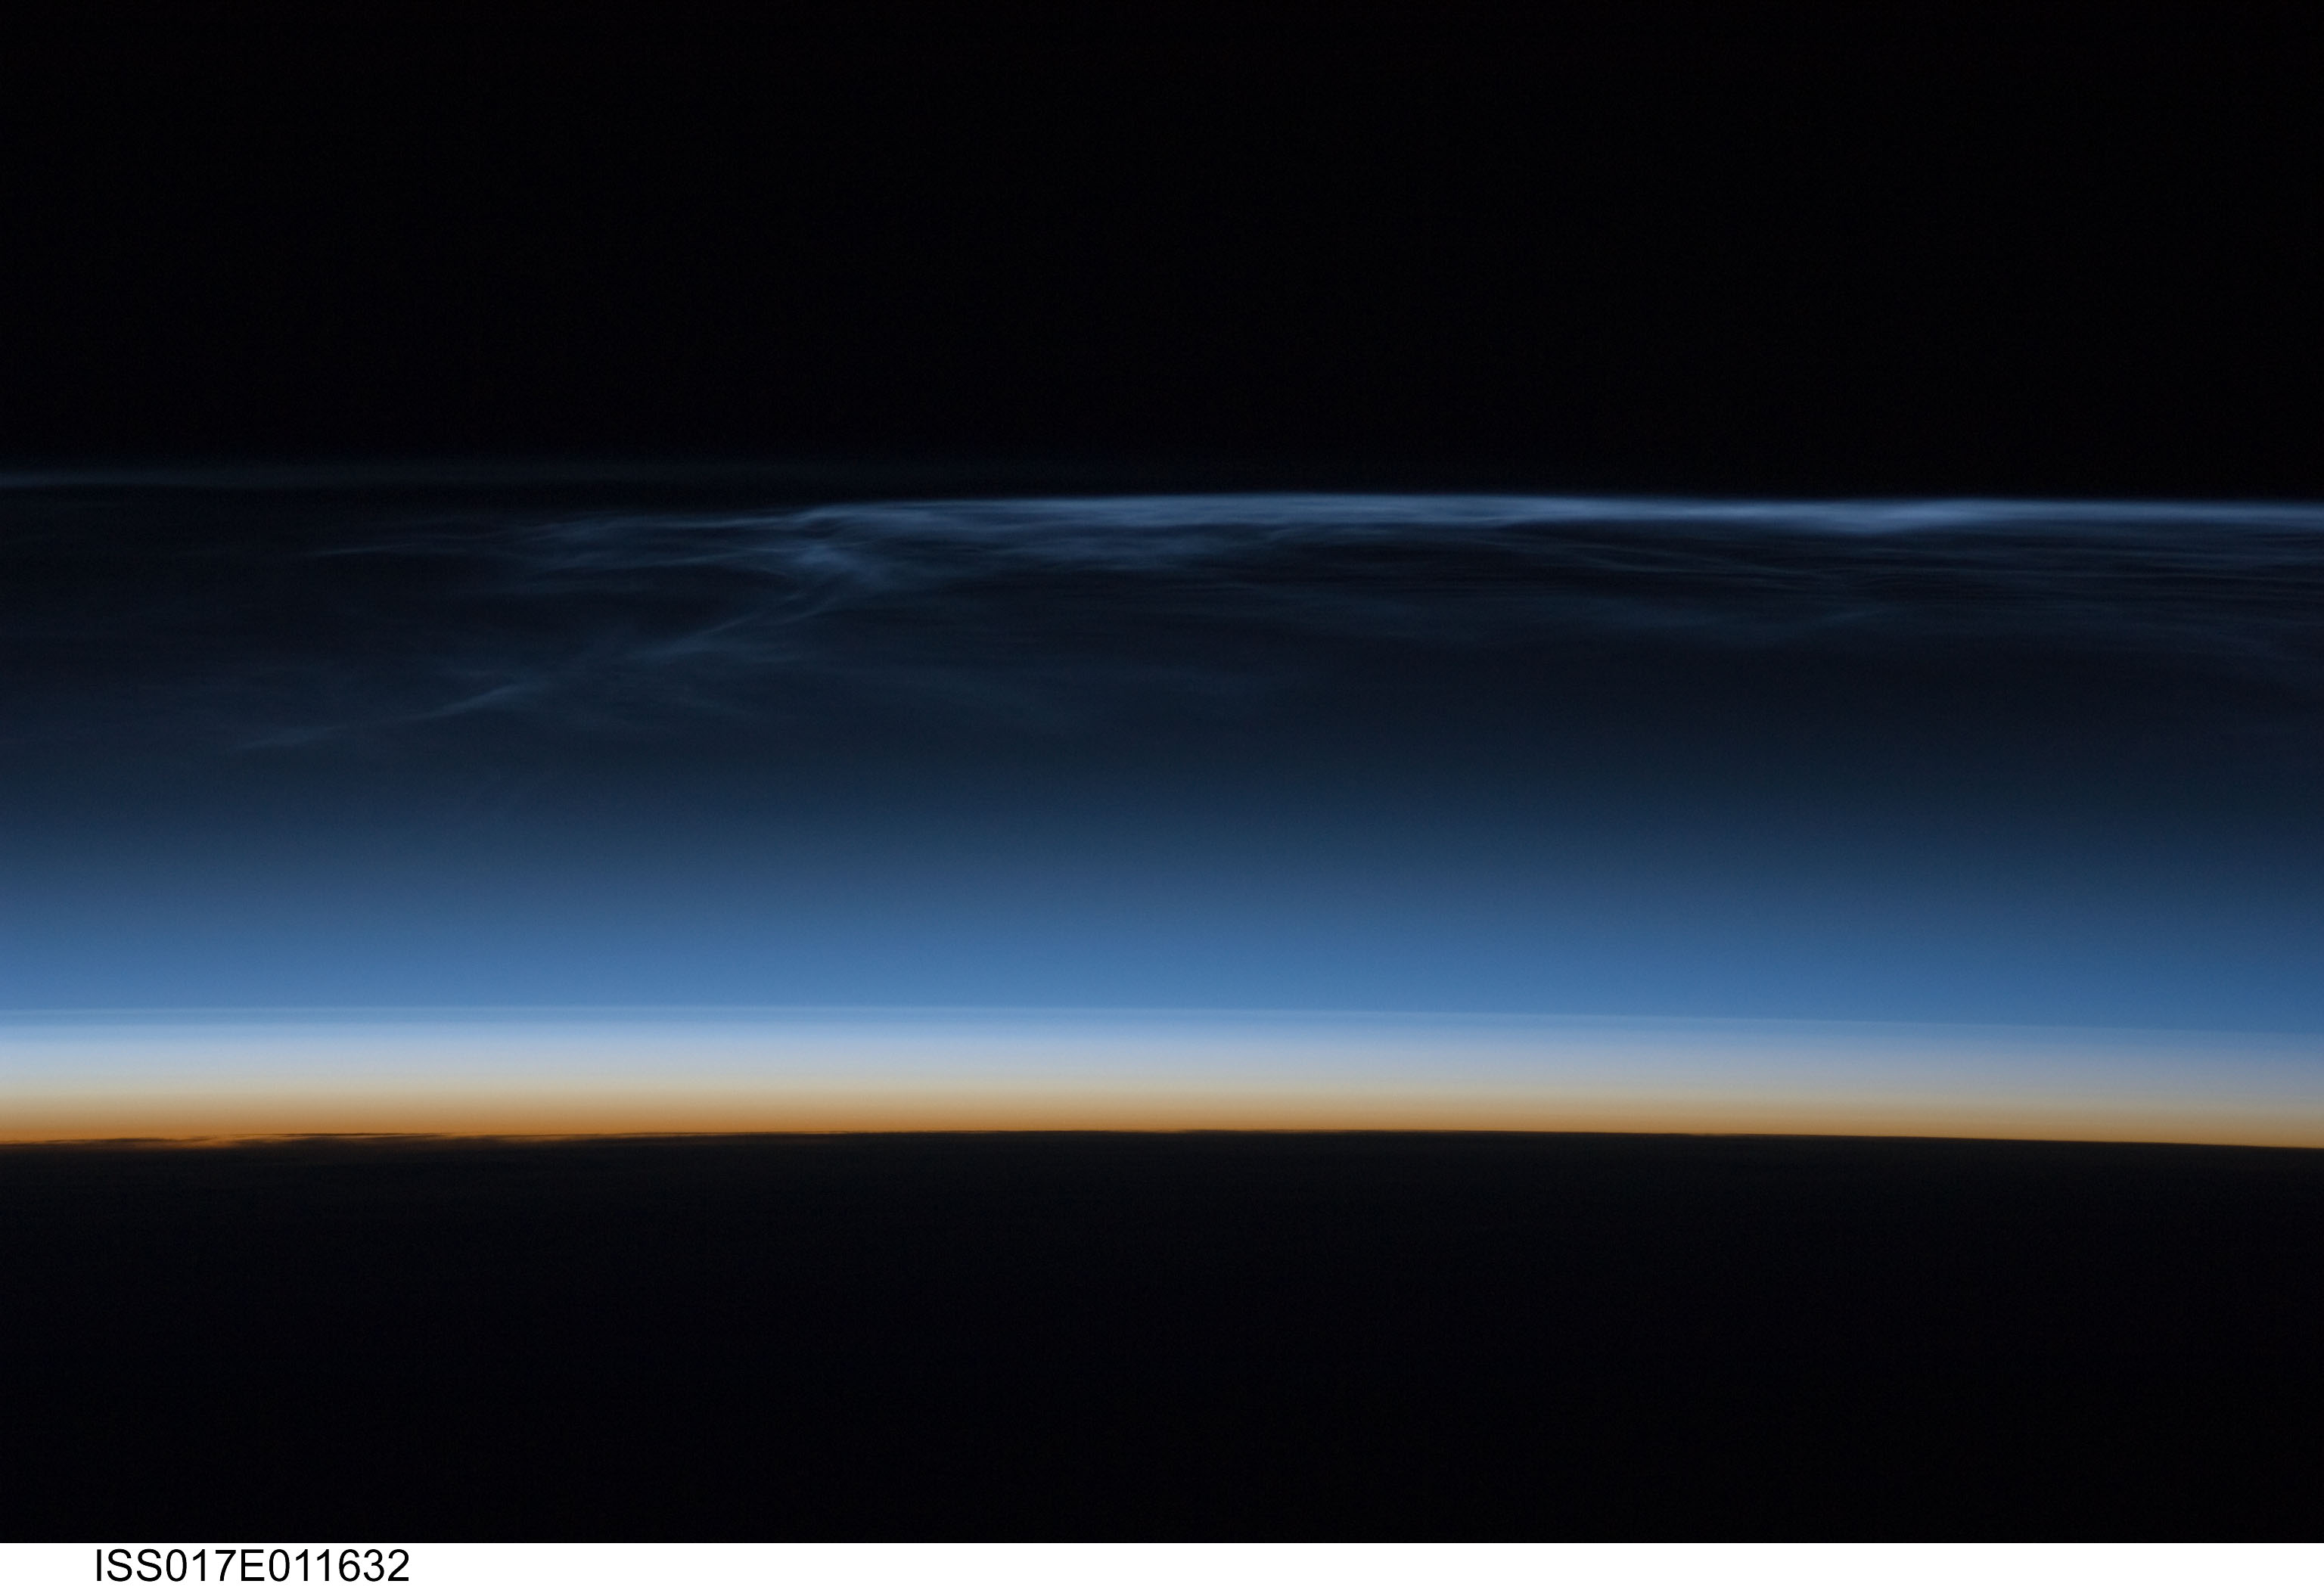 Electric Blue Wallpaper Hd Using The Space Station To Understand Climate Change Nasa